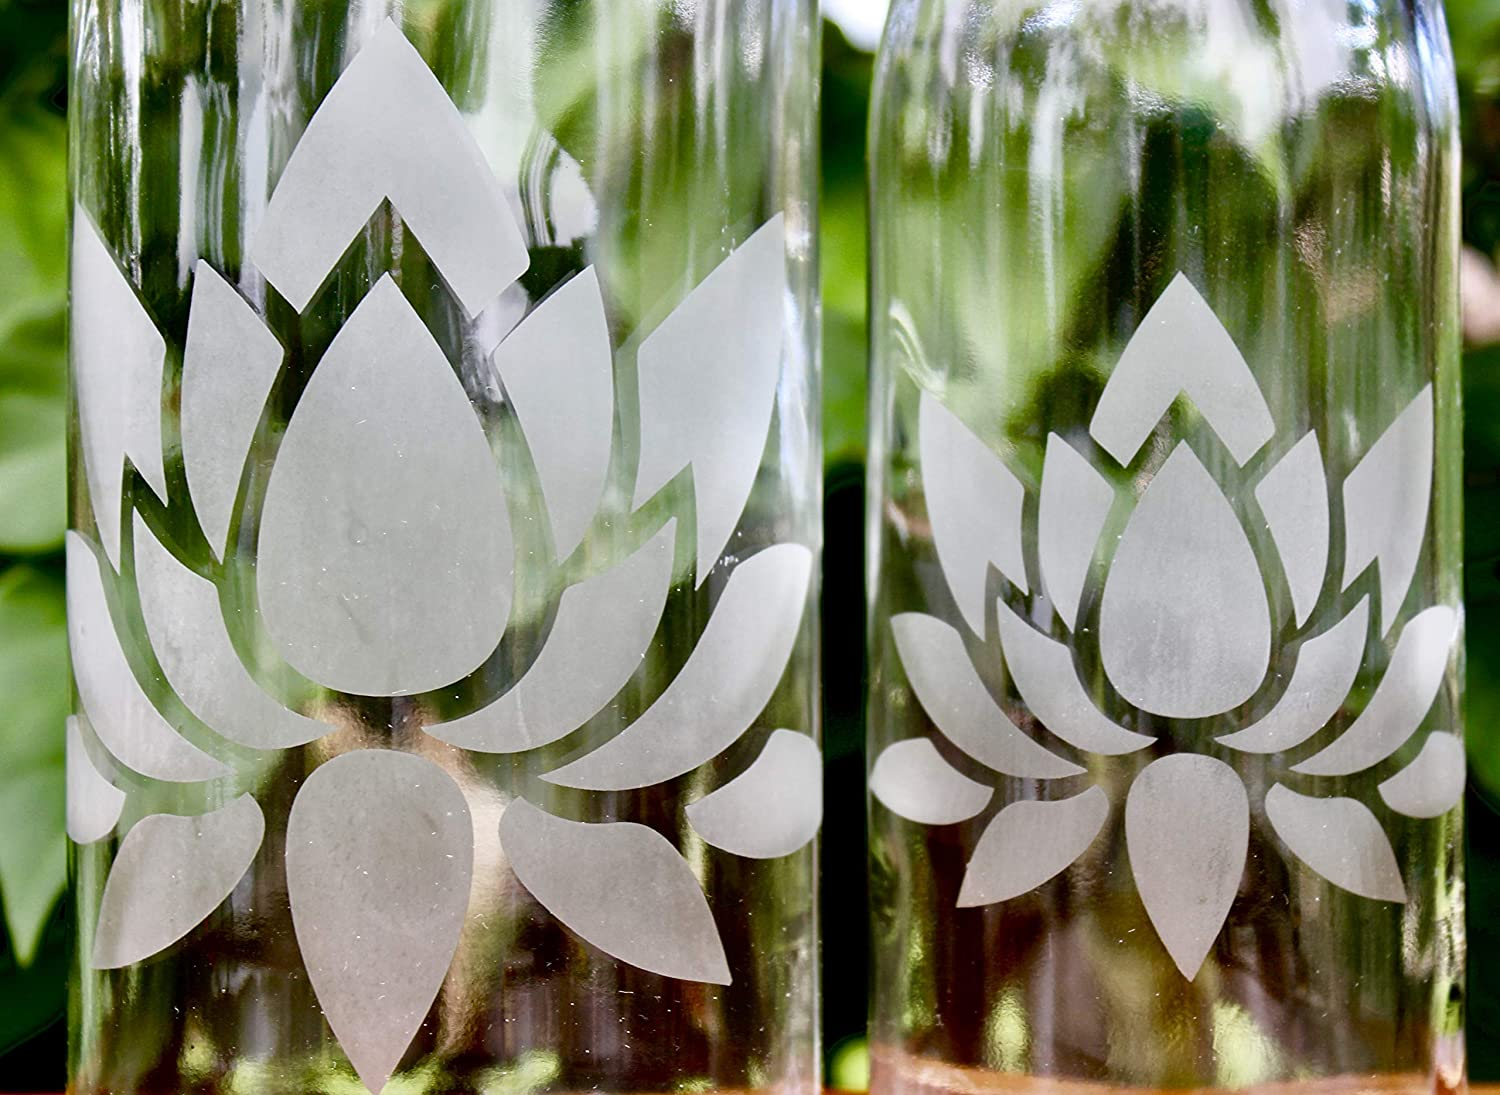 32oz Lotus Flower Etched Glass Bottle With Swing-Top Lid